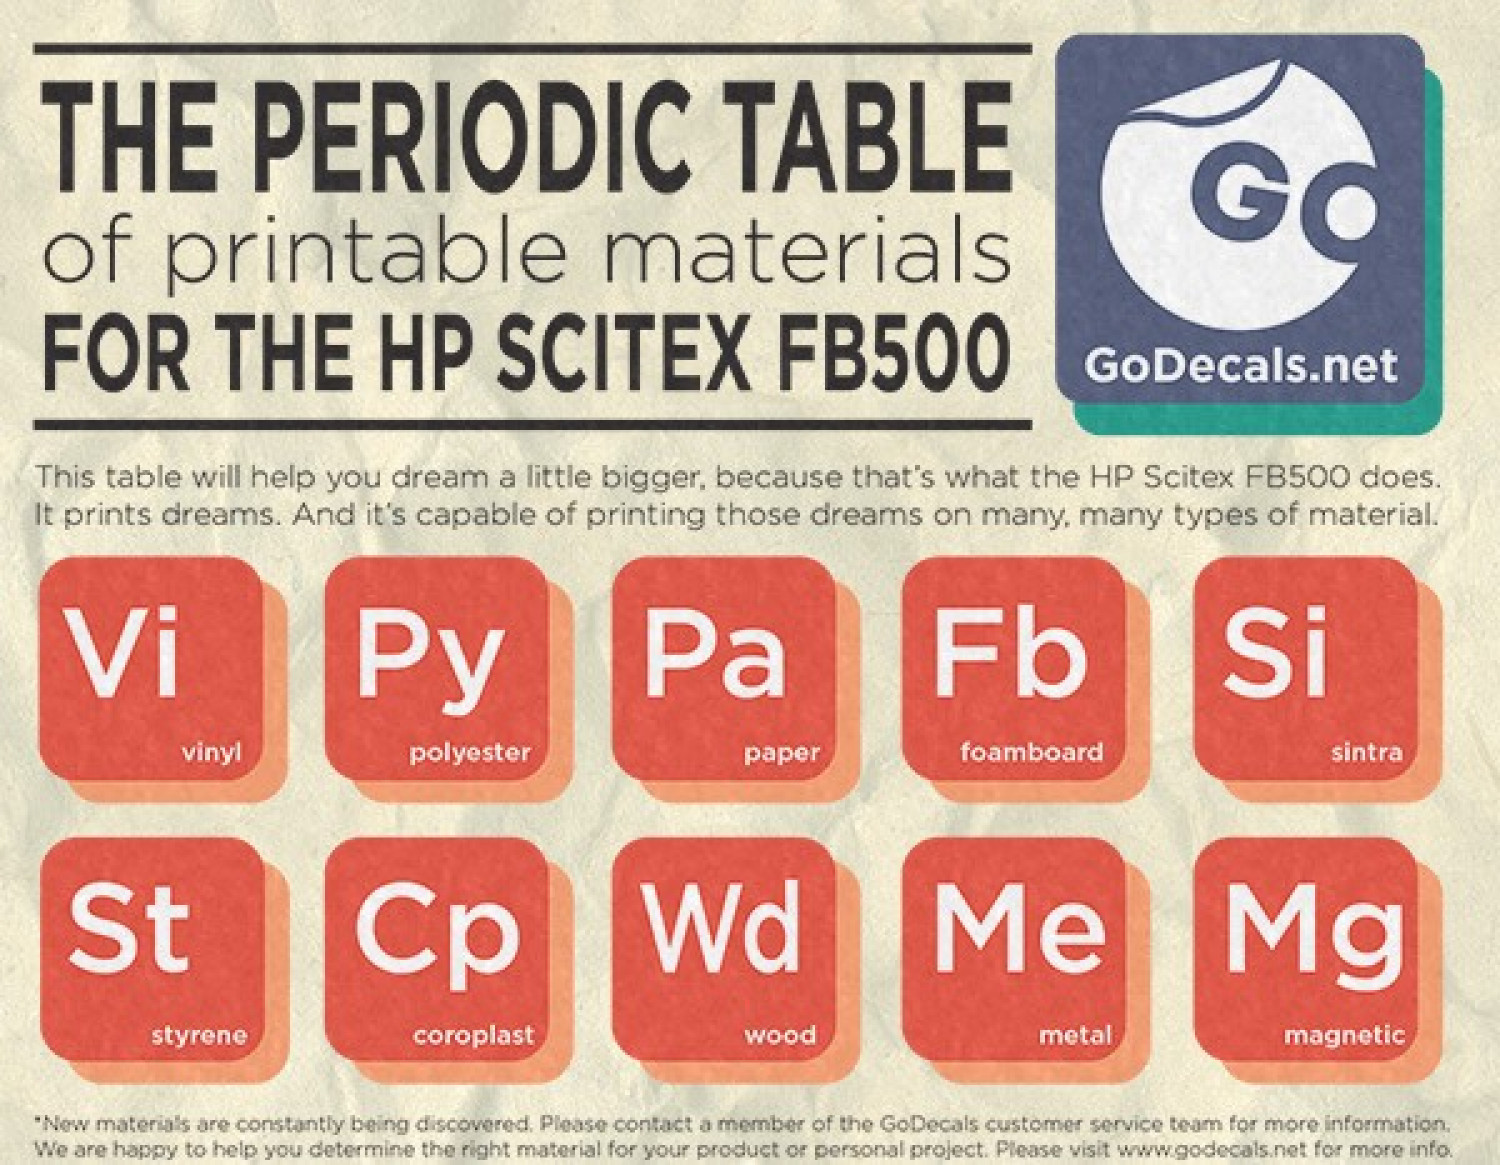 The Periodic Table of Printable Materials Infographic